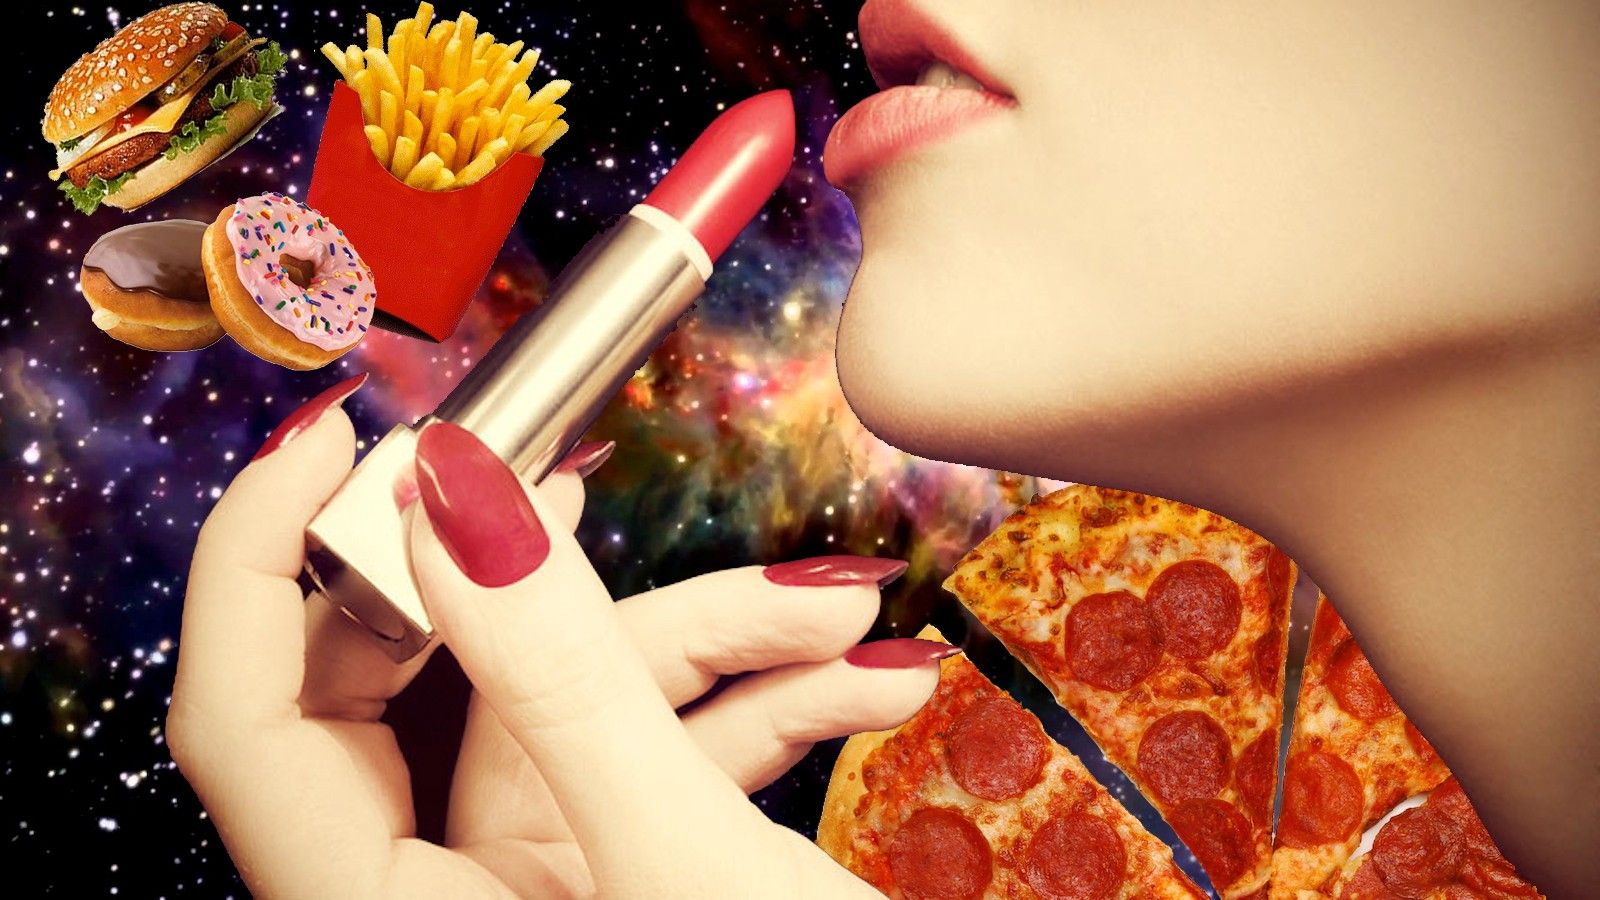 Lip-Smackeringly Good: Why Women Crave Junk Food Beauty Products